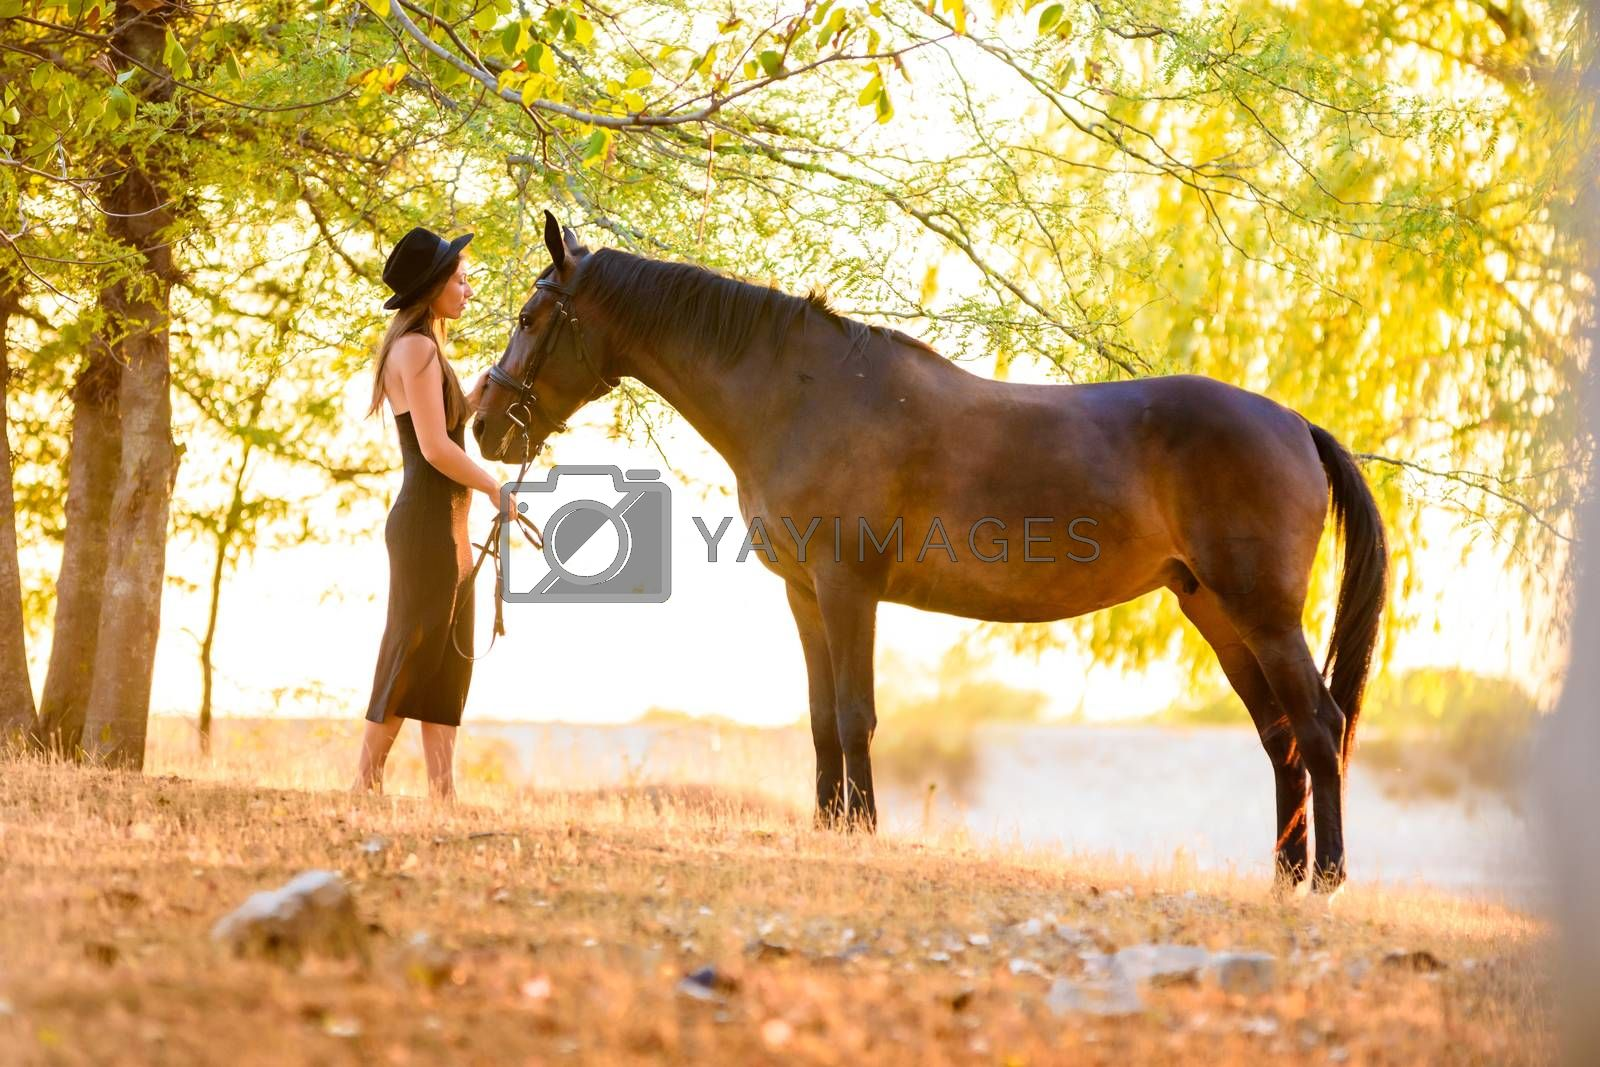 Beautiful girl stands with a horse in the forest at sunset with beautiful backlighting